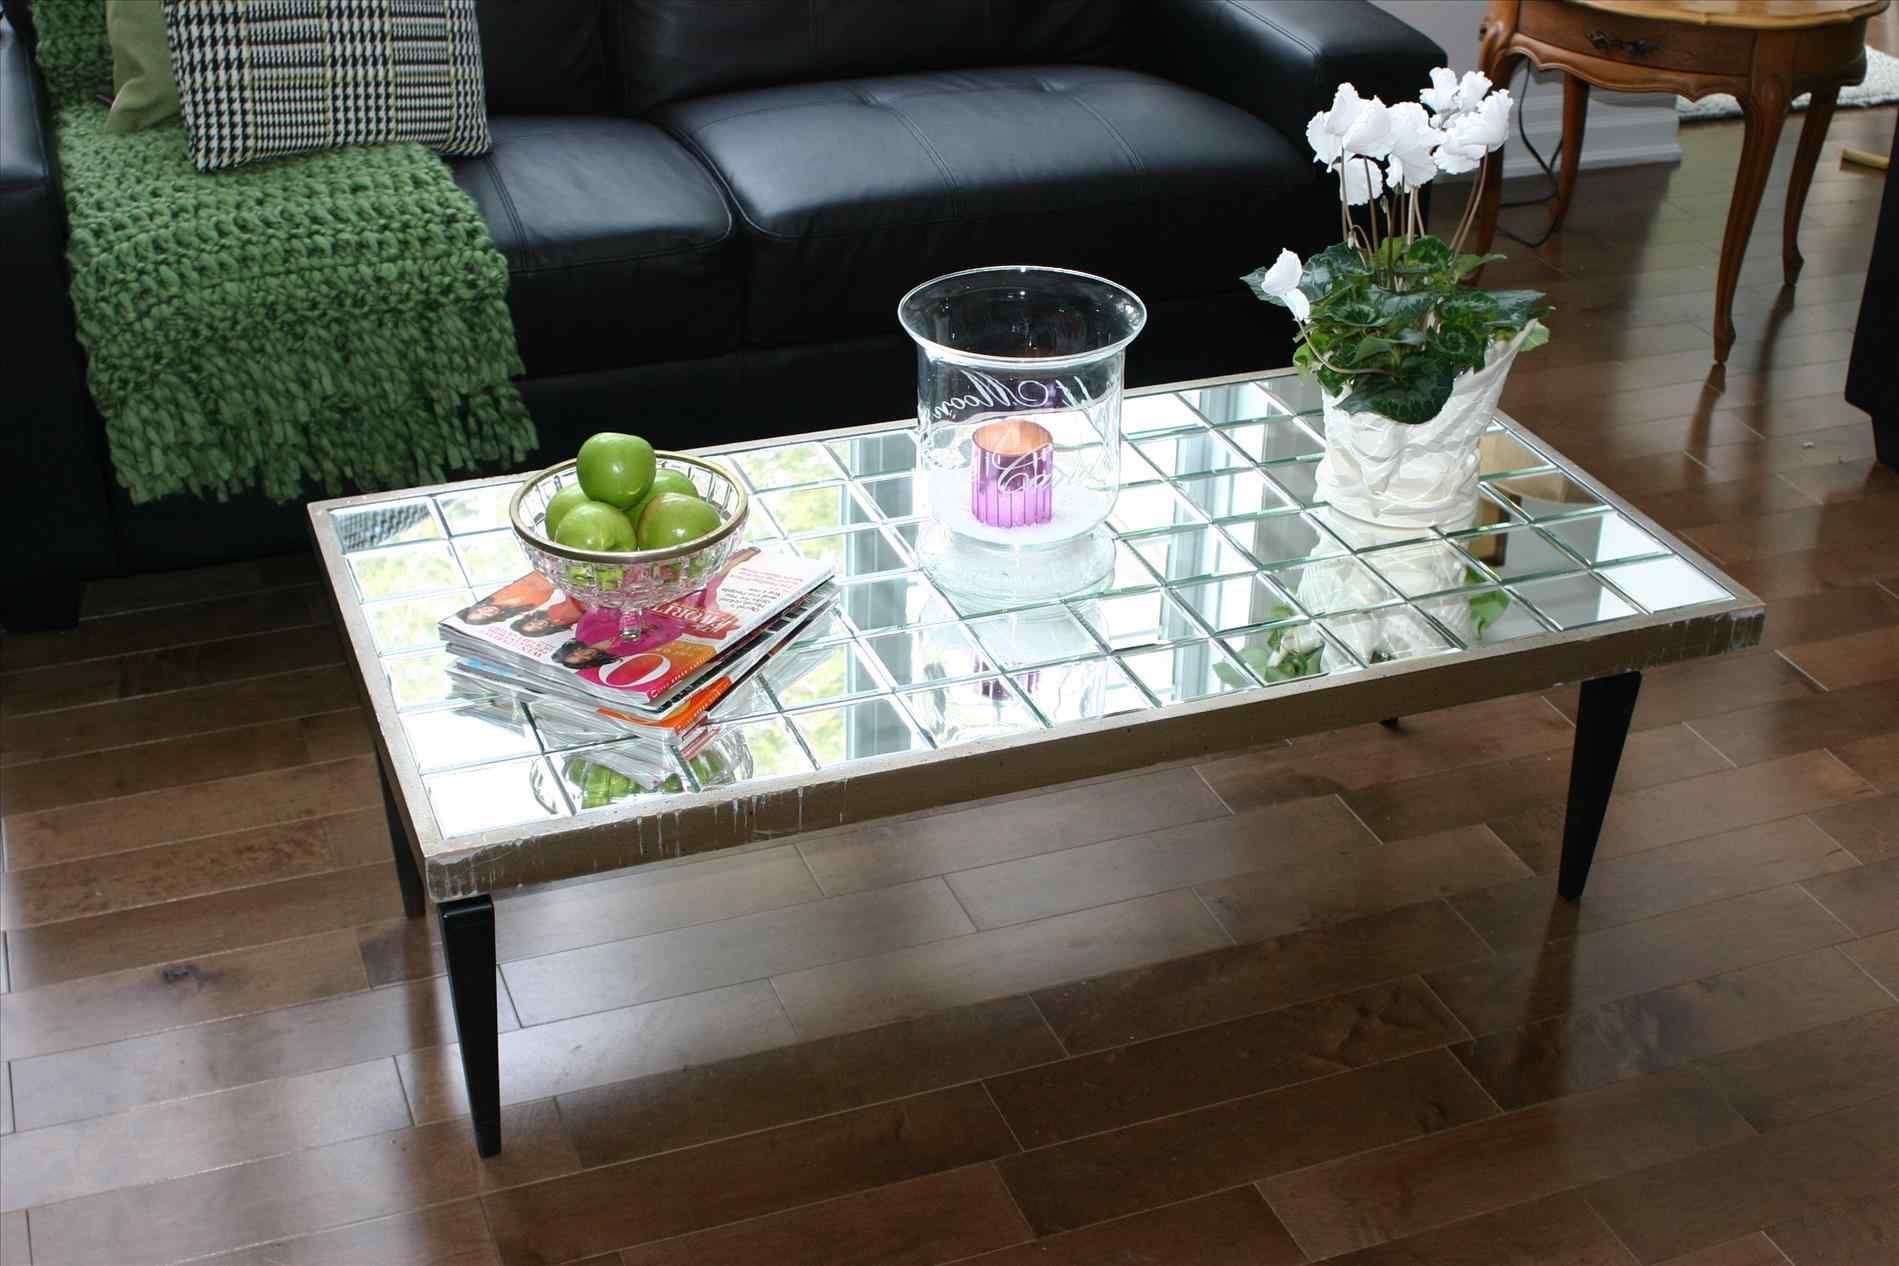 Gorgeous Diy Tile Coffee Table Design For Easy Build Breakpr Mirrored Coffee Tables Tiled Coffee Table Diy Coffee Table [ 1266 x 1899 Pixel ]